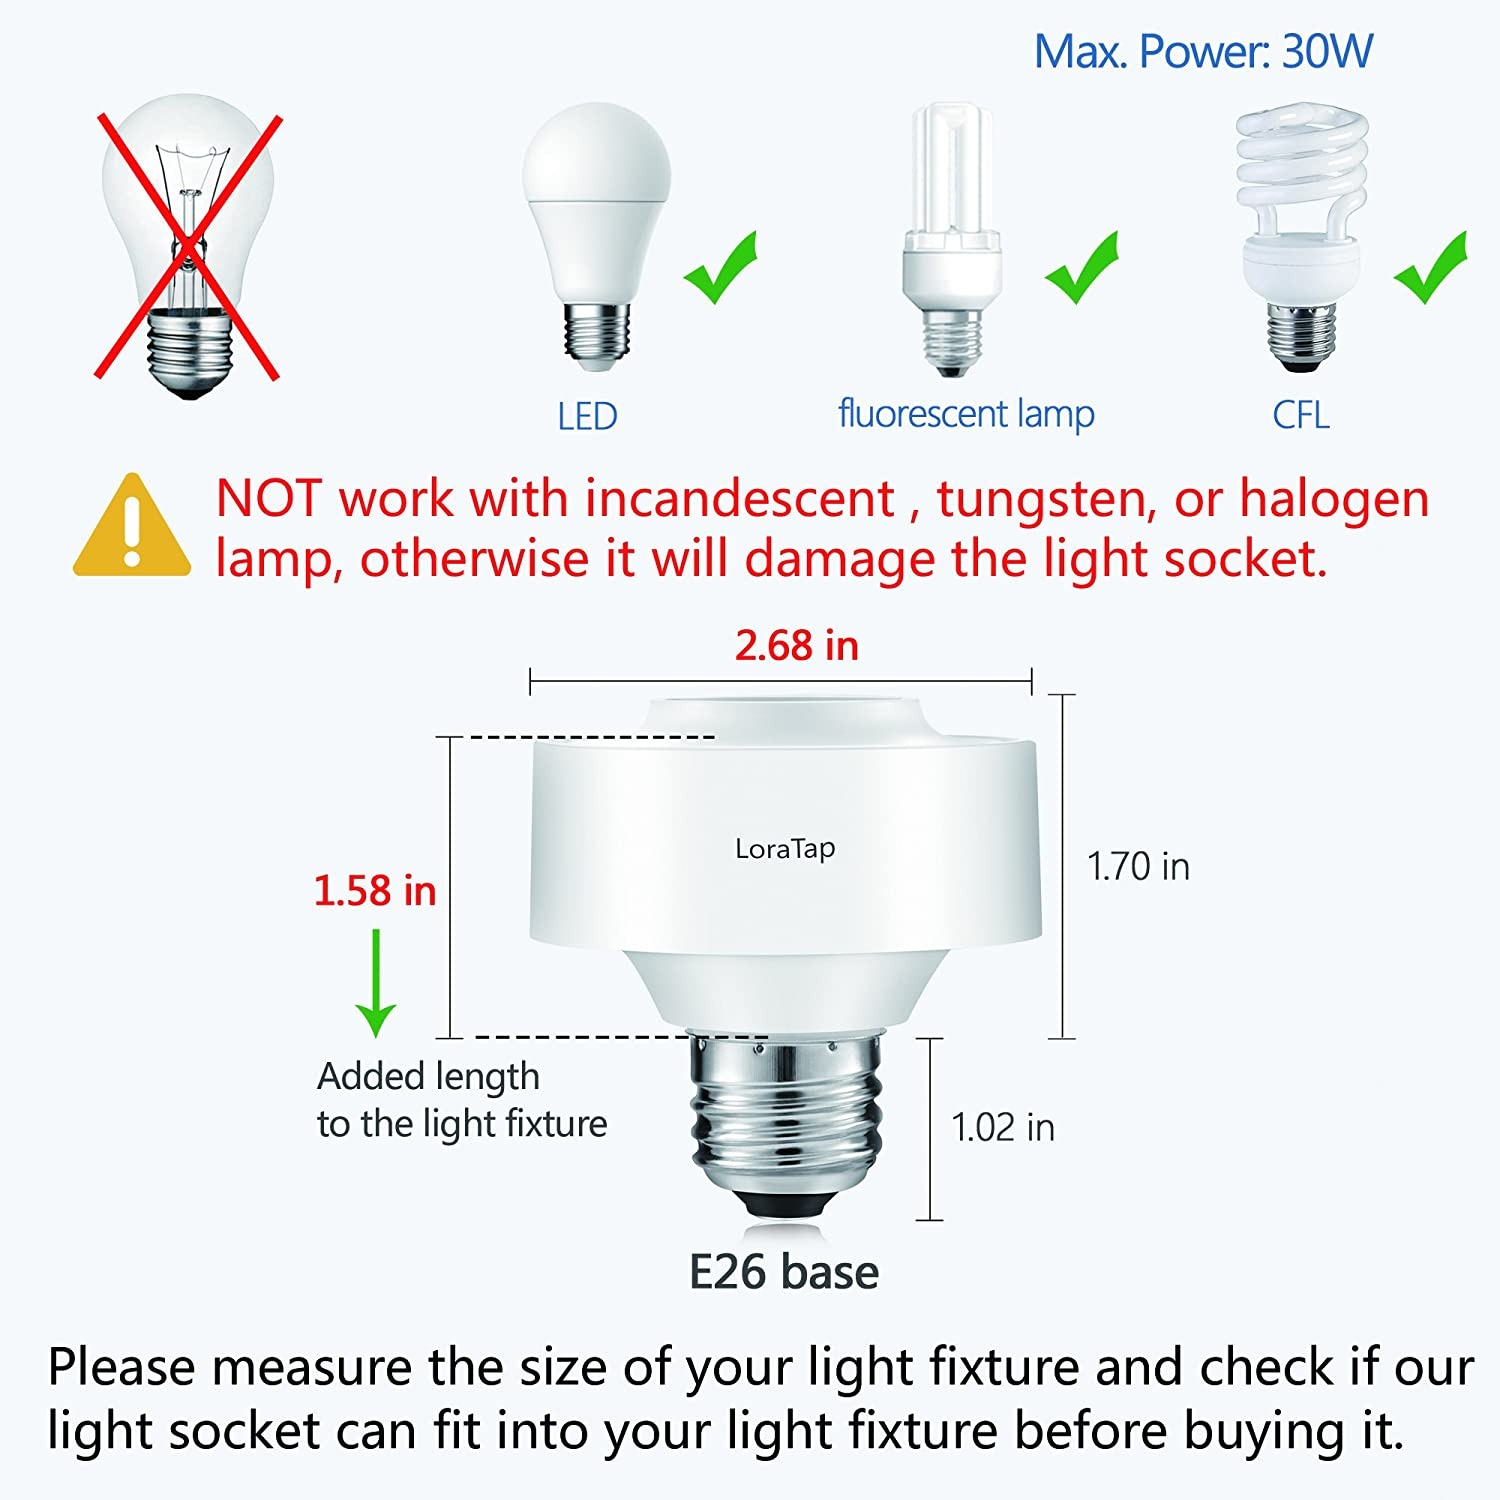 Loratap Wireless Remote Control E26 Light Bulb Socket Lamp Switch Incandescent Diagram Free Download Wiring Kit 656ft 915mhz Range Led Fixtures 30w Max